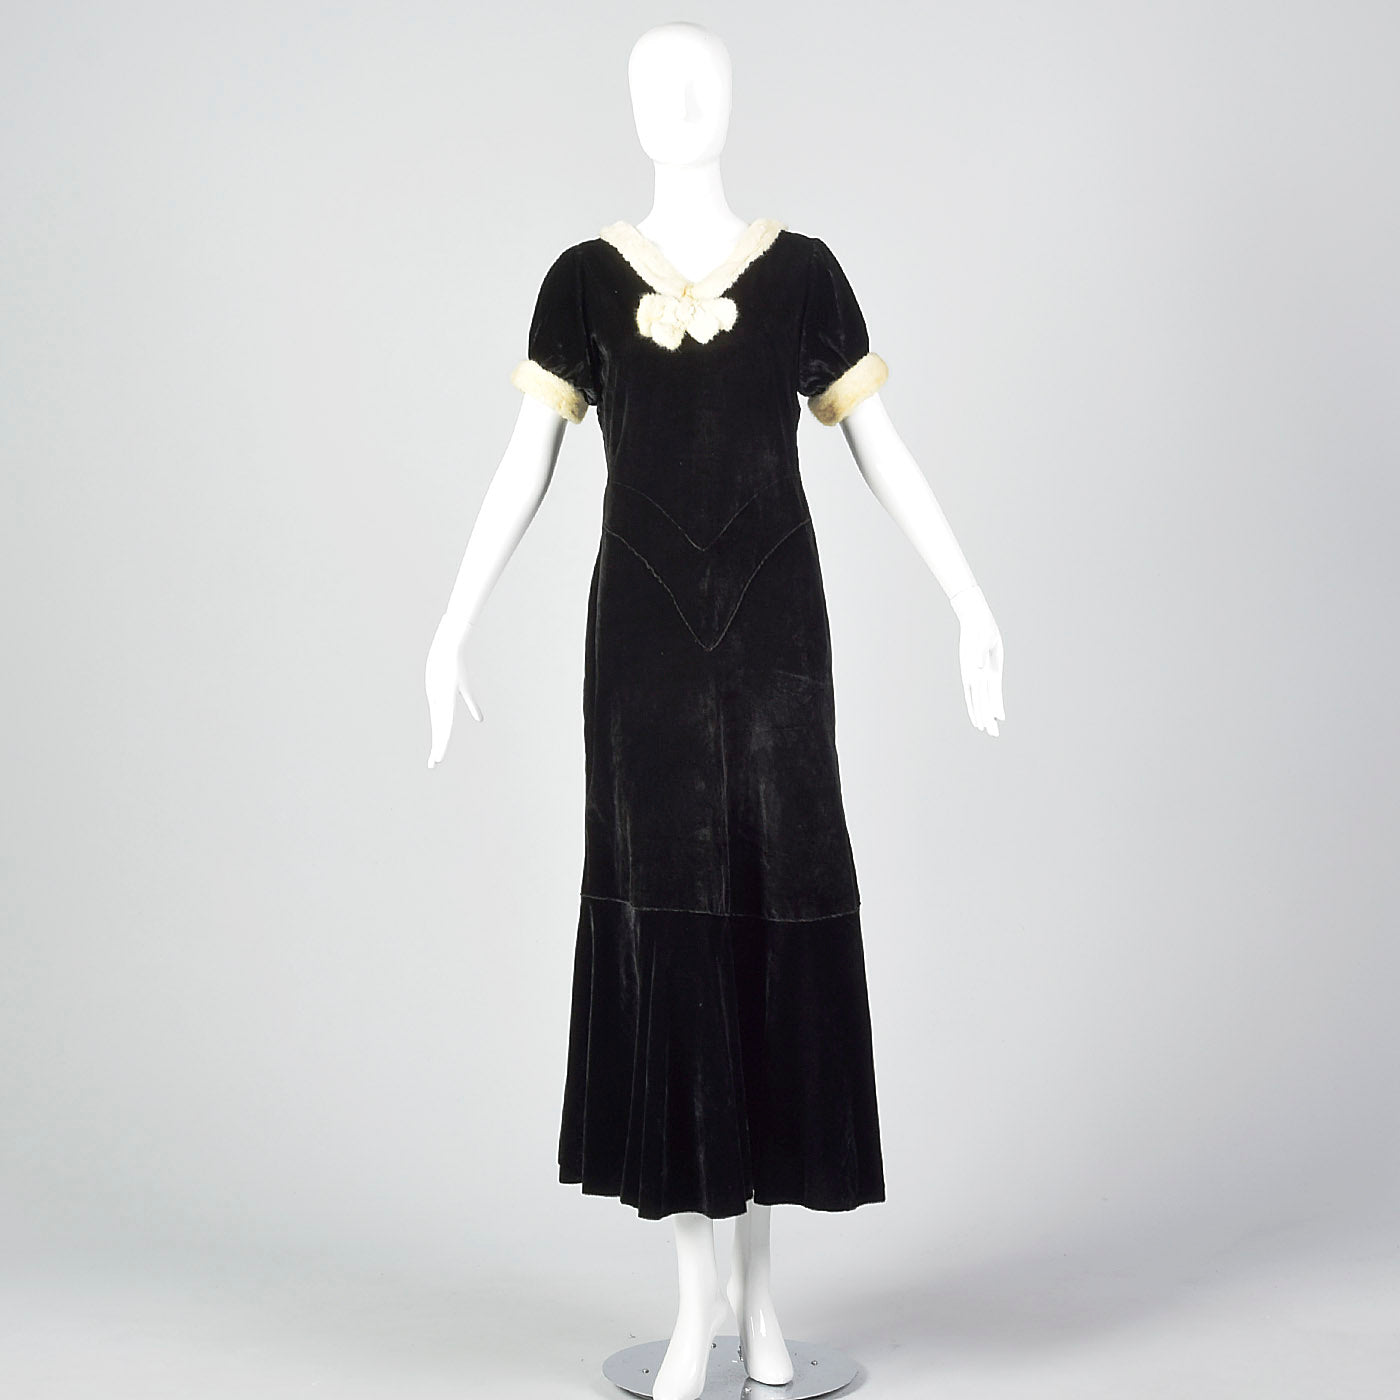 1930s Black Velvet Dress with Fur Collar